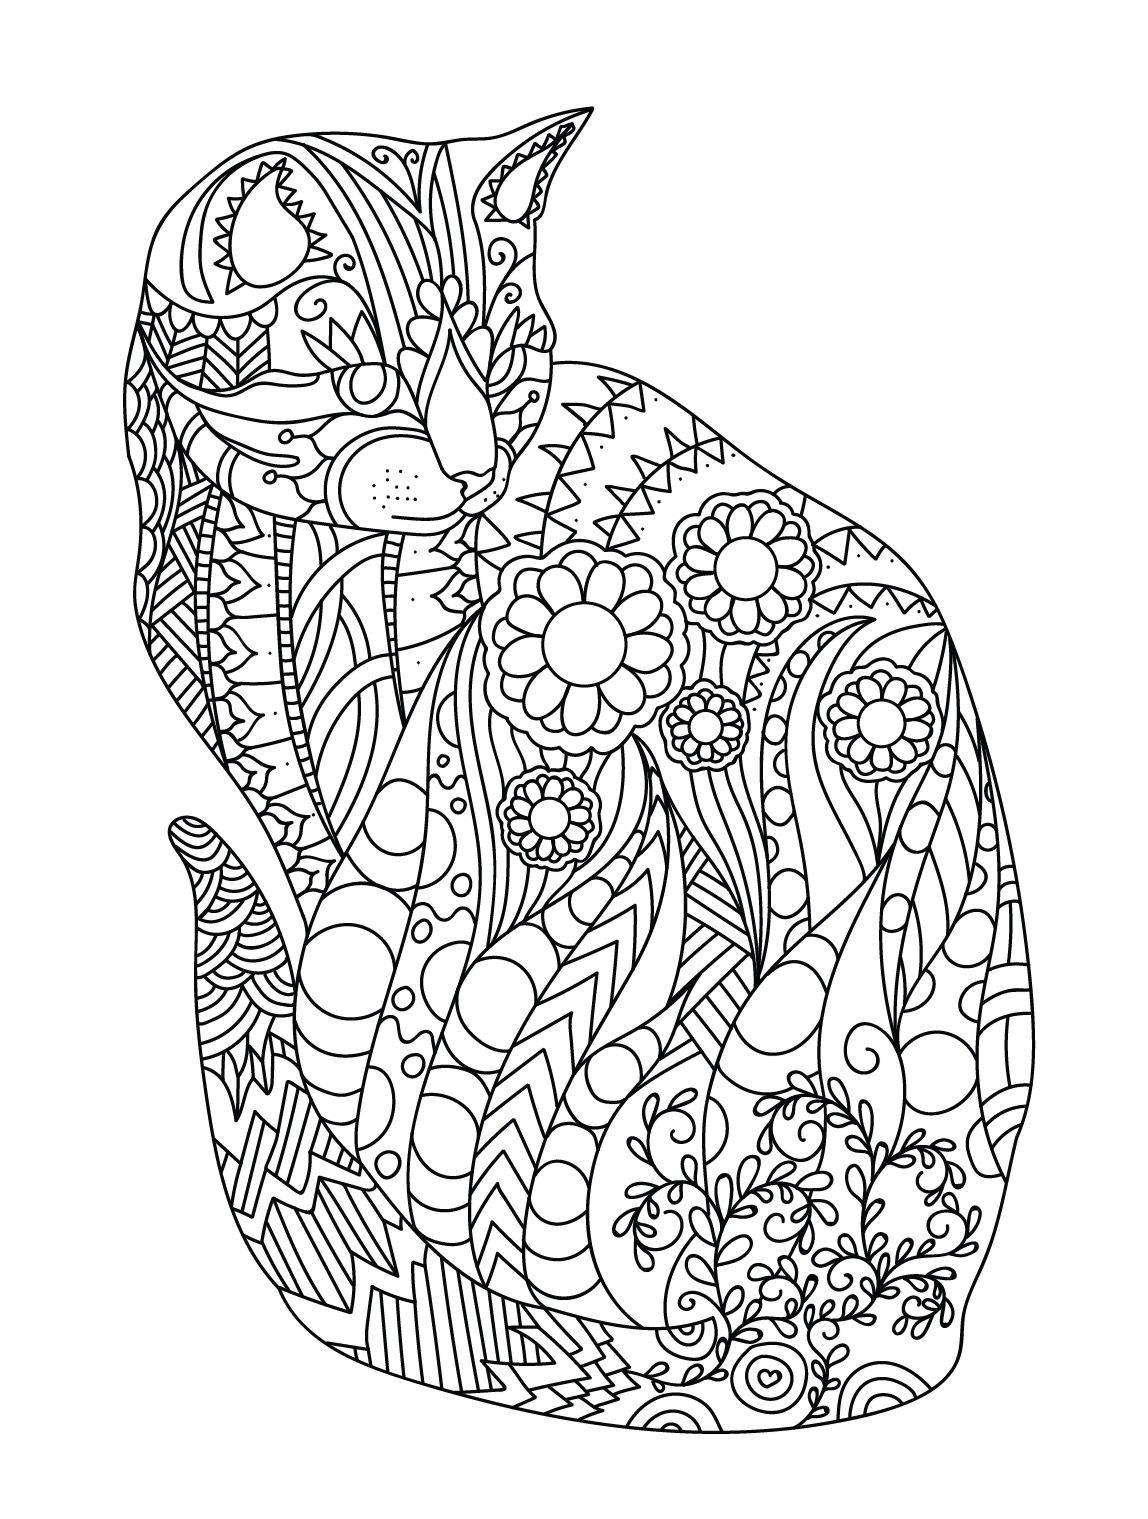 Coloring pages relaxing - Cat Colorish Coloring Book For Adults Mandala Relax By Goodsofttech